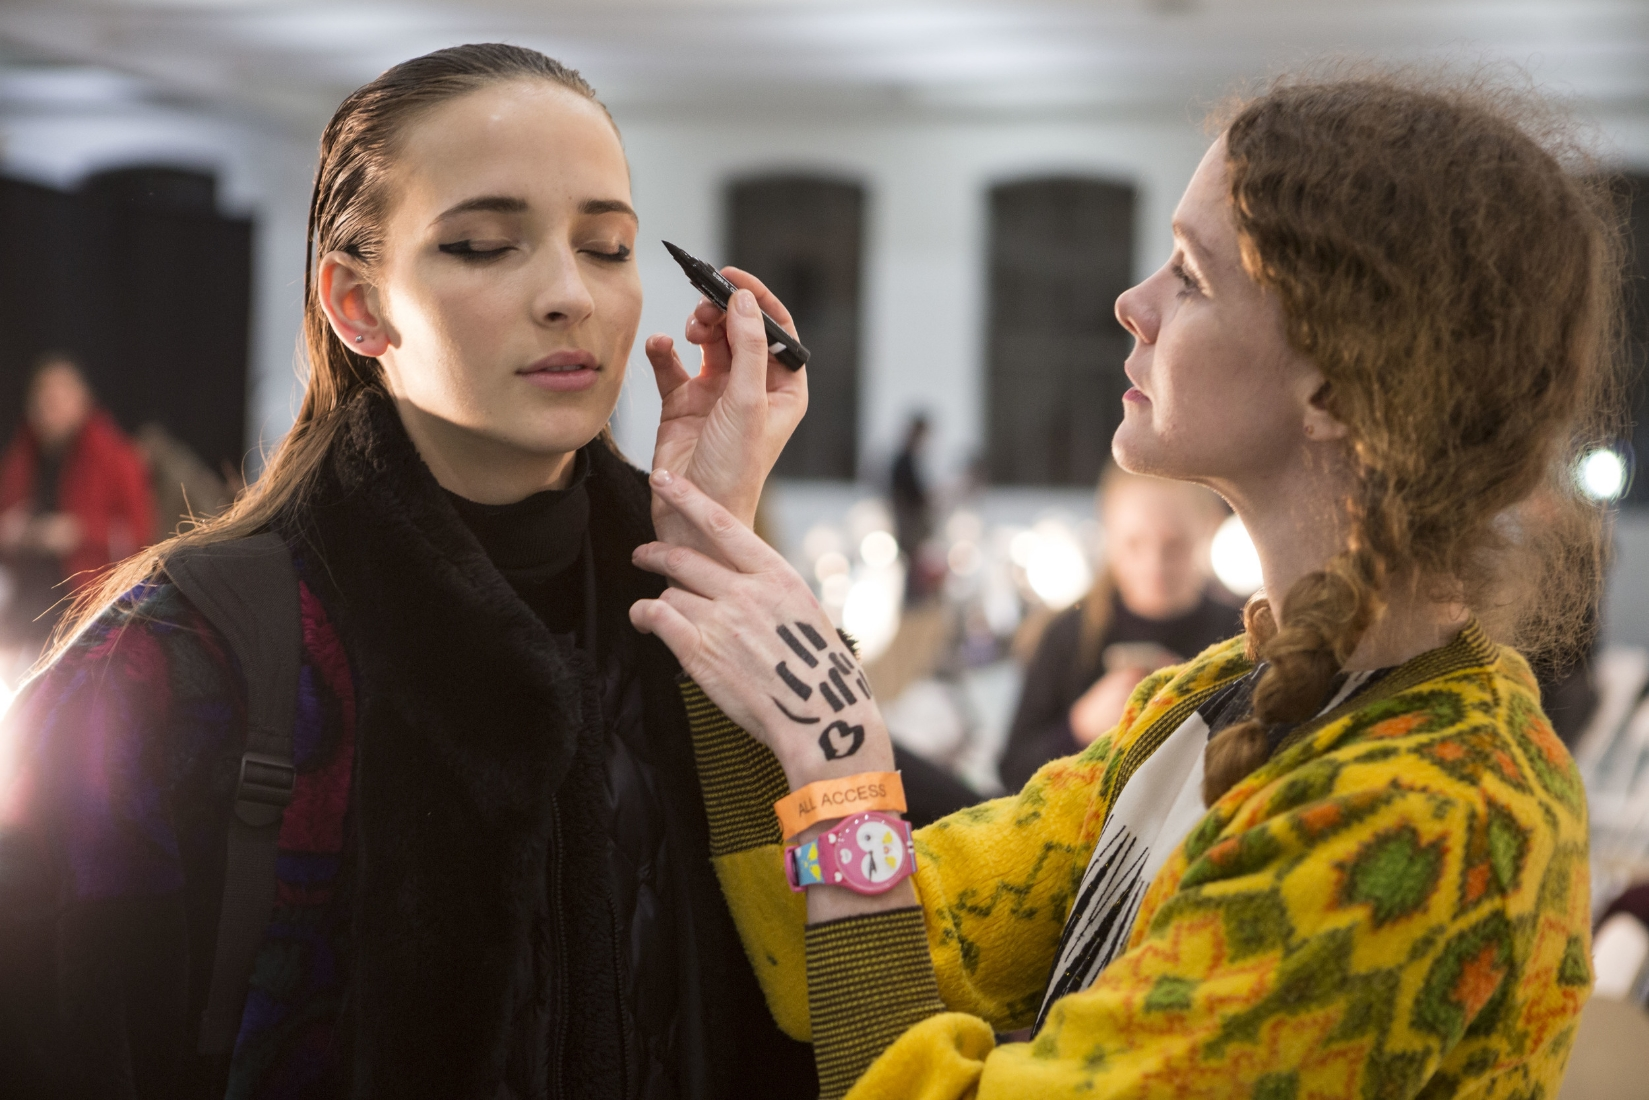 Alice Lane photographed by Mark Leibowitz doing makeup at the Suno show in her Swatch watch as seen in New York Times Style Section